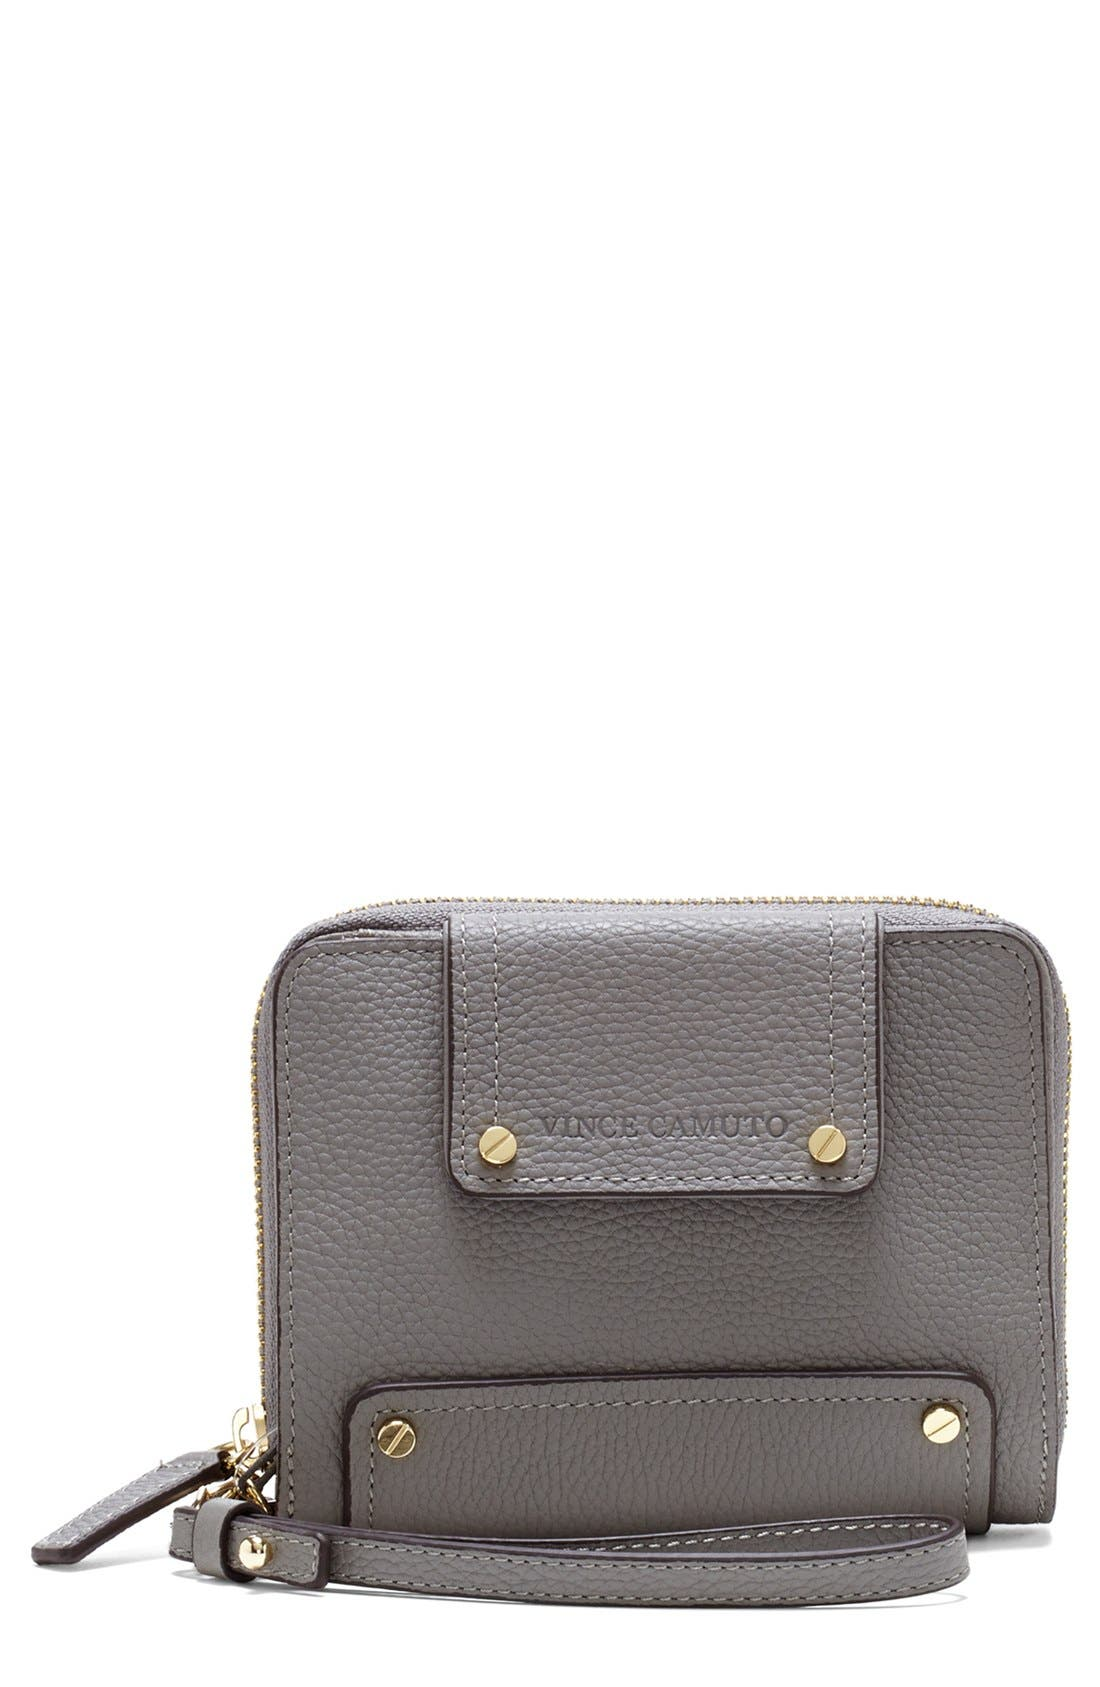 Alternate Image 1 Selected - Vince Camuto 'Jill' Tech Wristlet